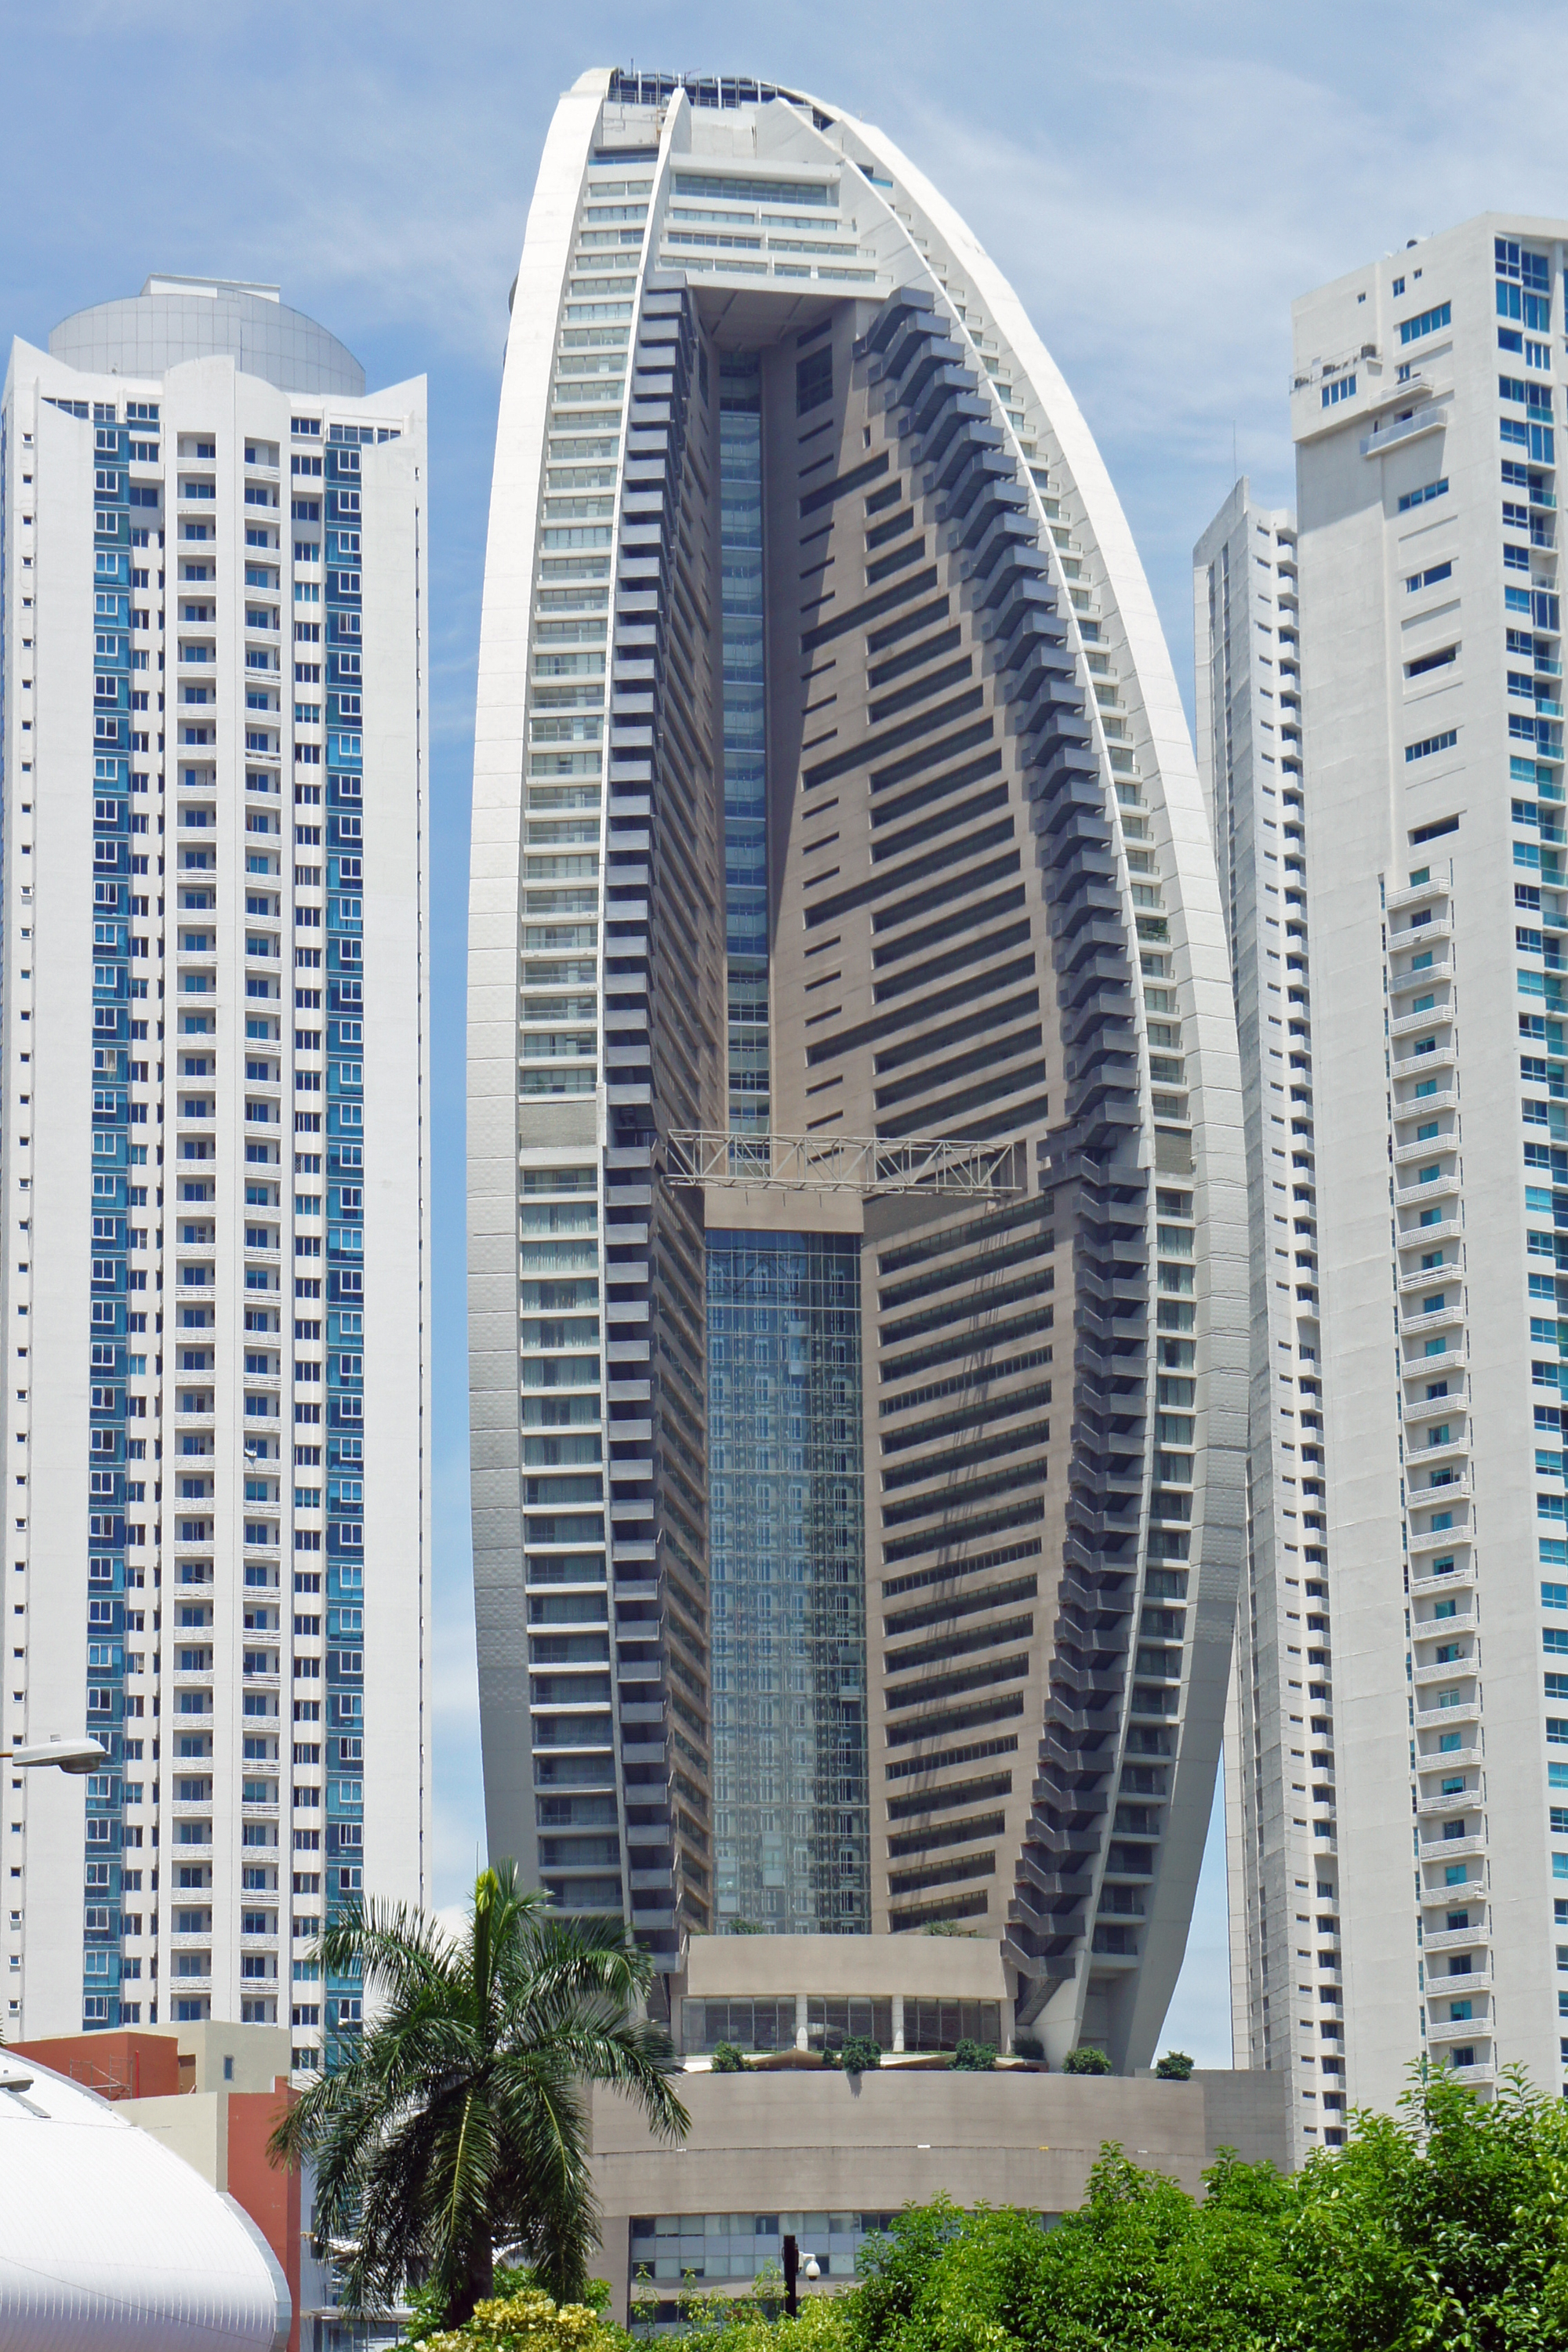 A Tall White And Grey Colored Building With Curved Facade Towering The Trump Ocean Club International Hotel